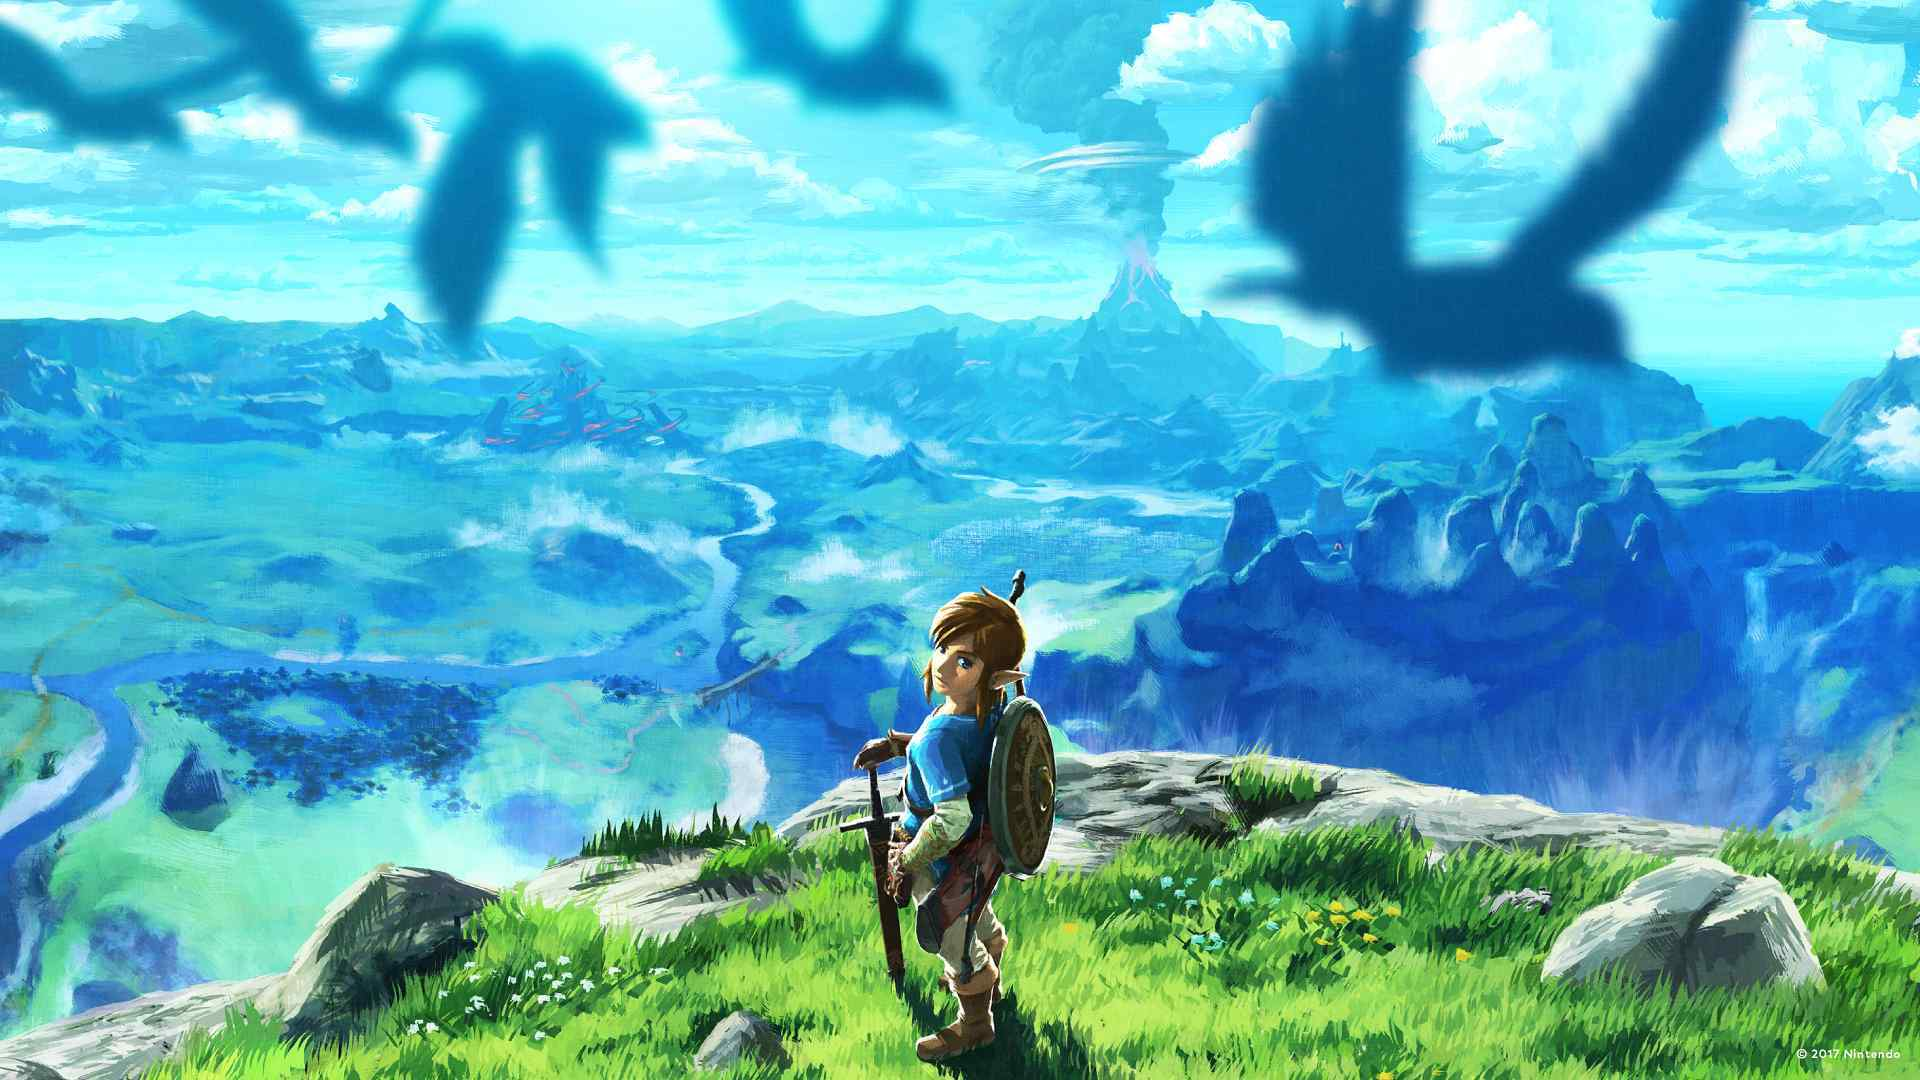 Nintendo Releases Tons of Wallpapers to Brighten Up Your Zoom Calls